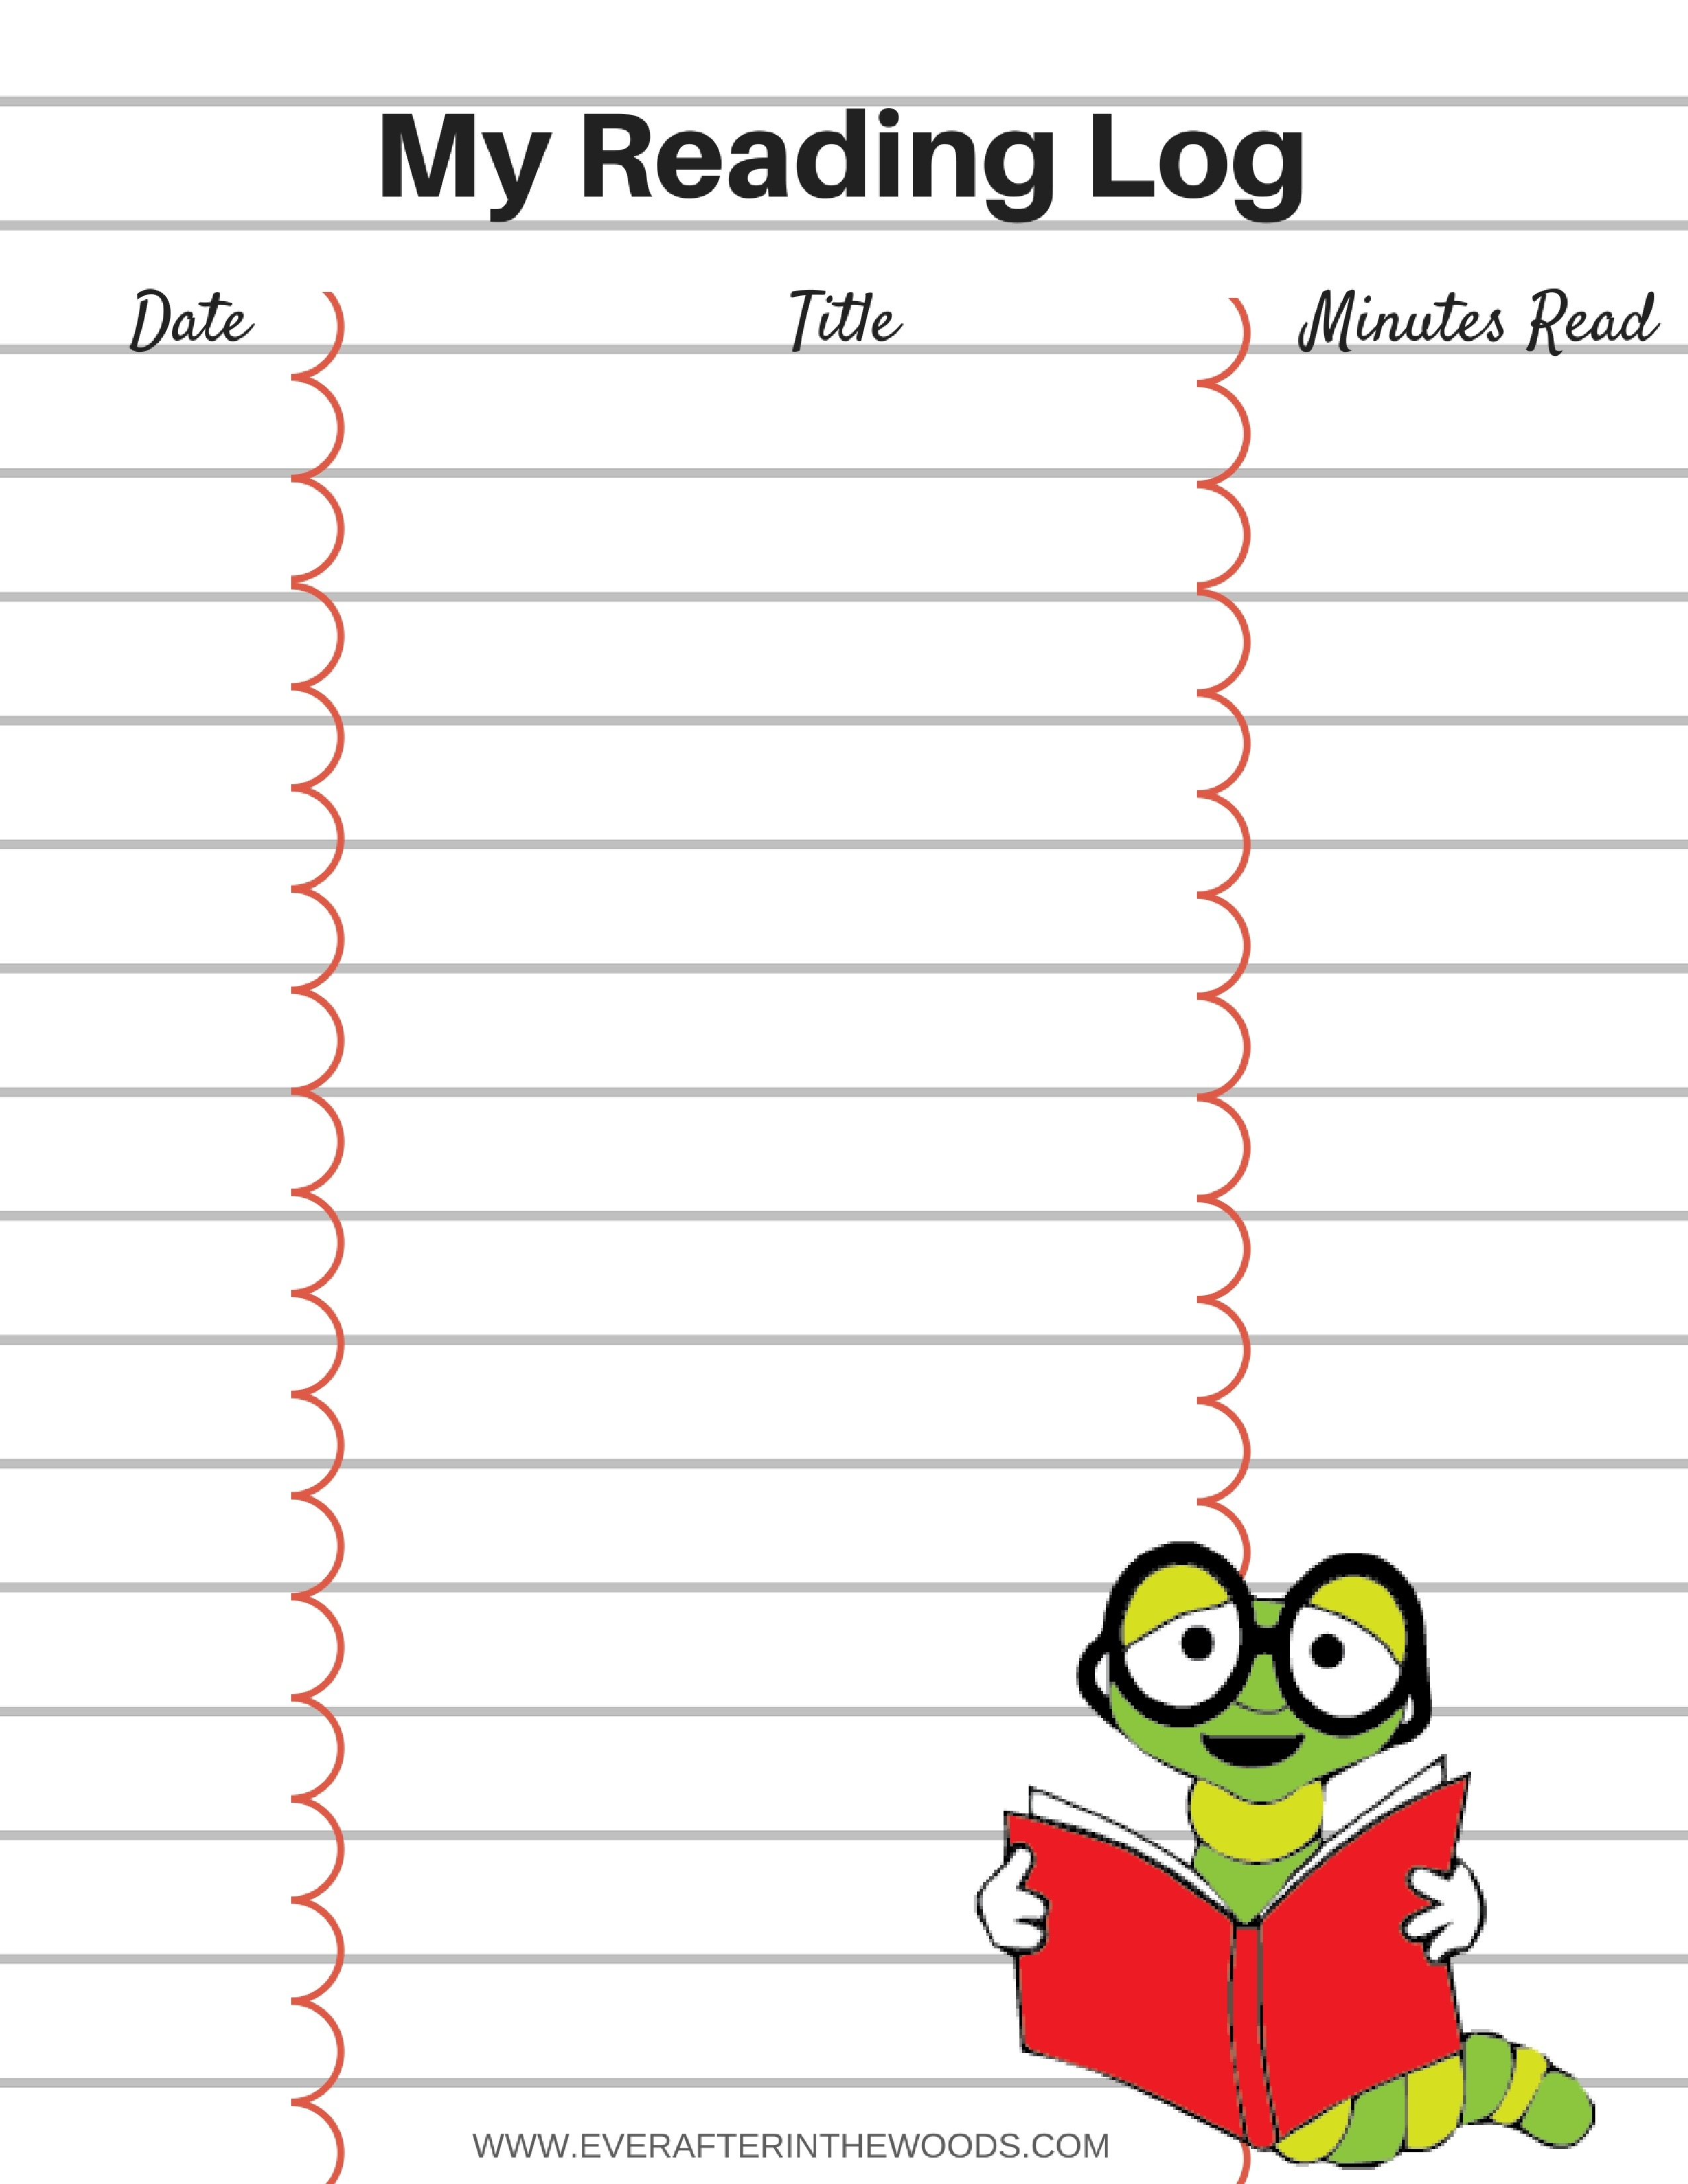 Printable Reading Log For Your Children - Ever After In The Woods - Free Printable Reading Logs For Children